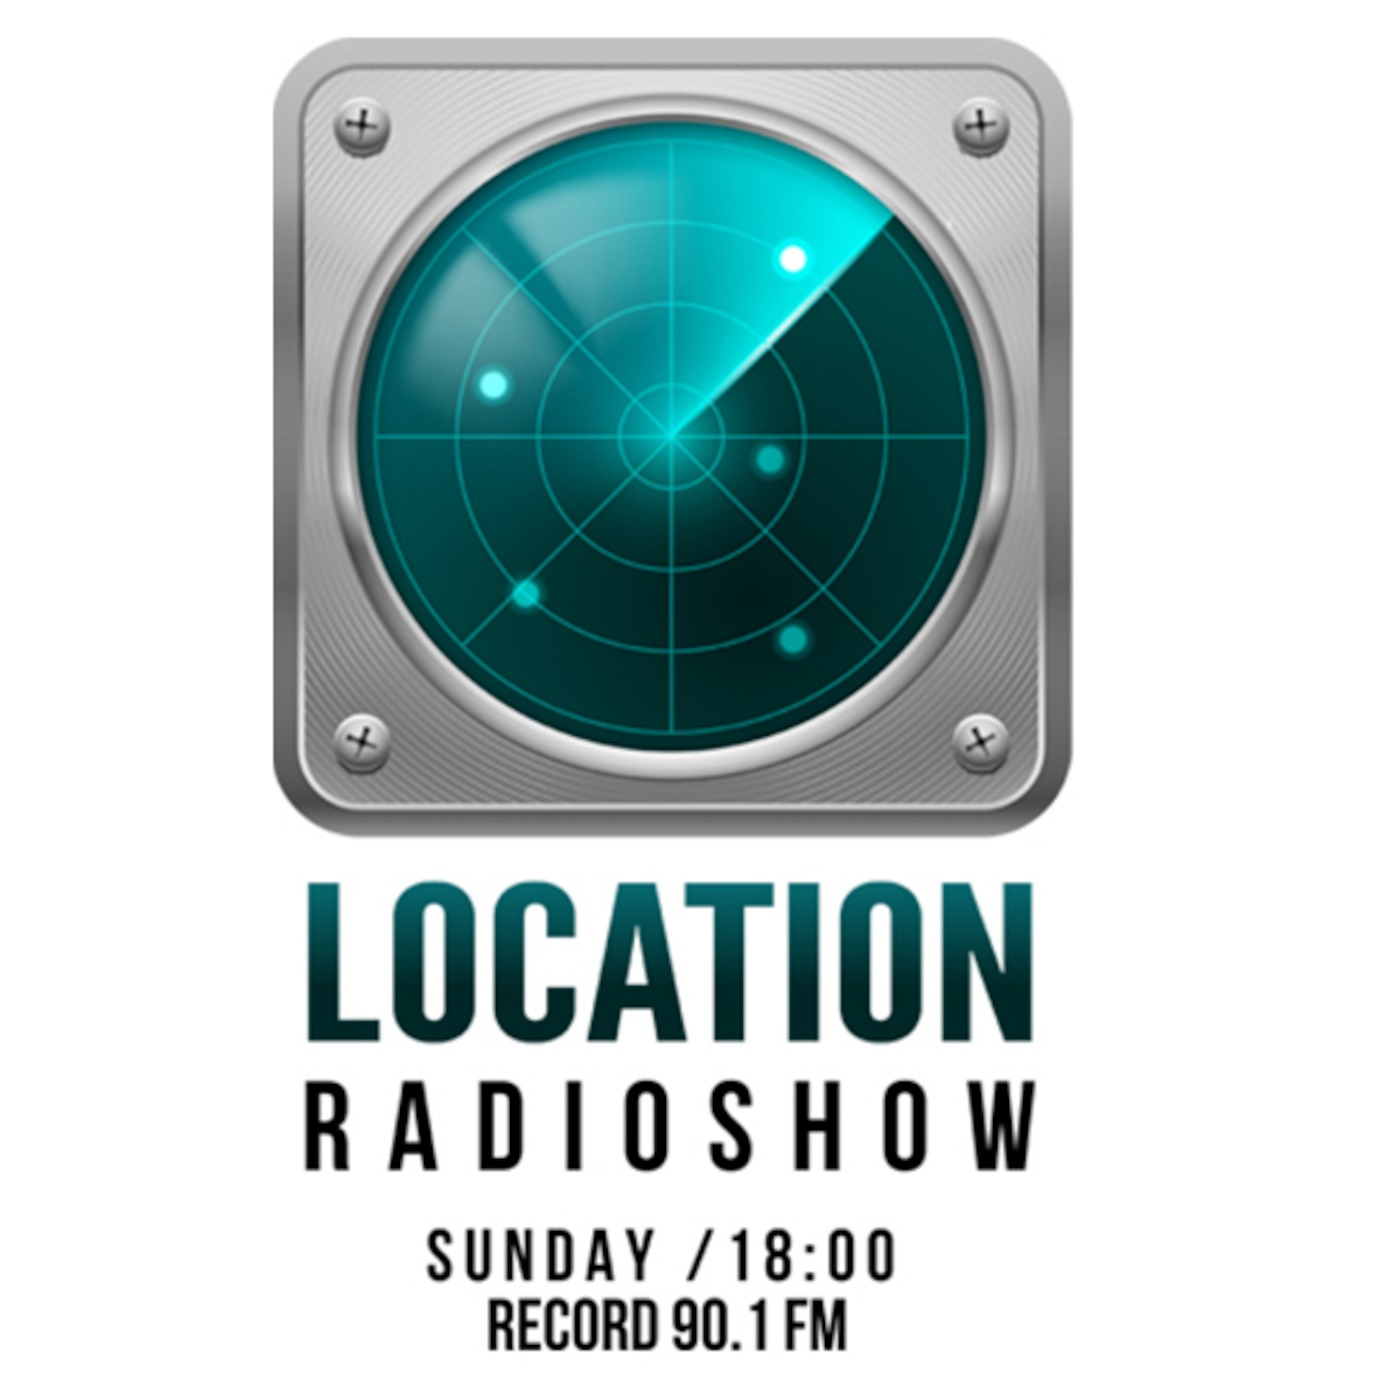 Radio Show Location